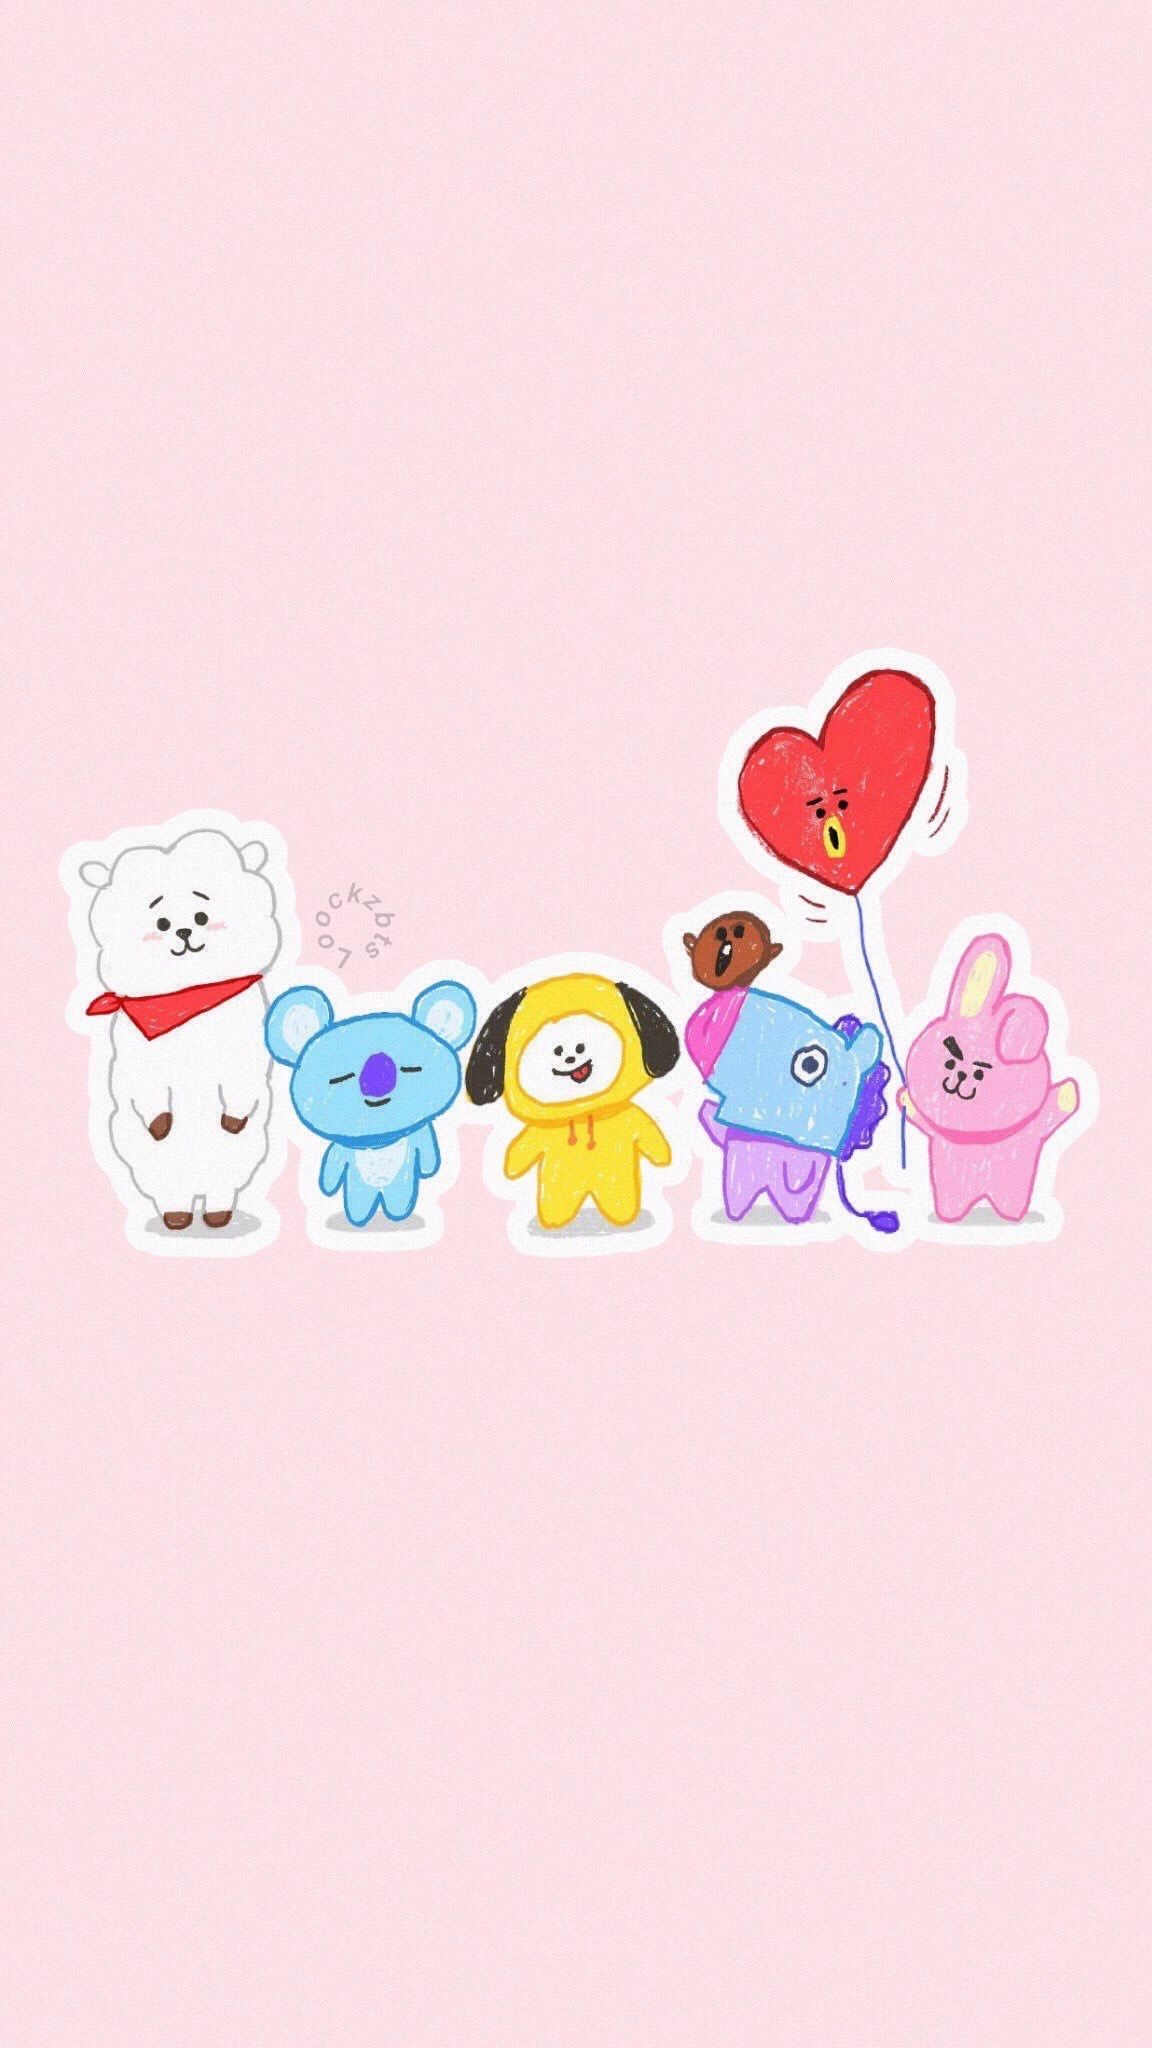 ❤ ❤ ❤ #bts #bt21 | BTS love | Pinterest | BTS, Wallpaper ...